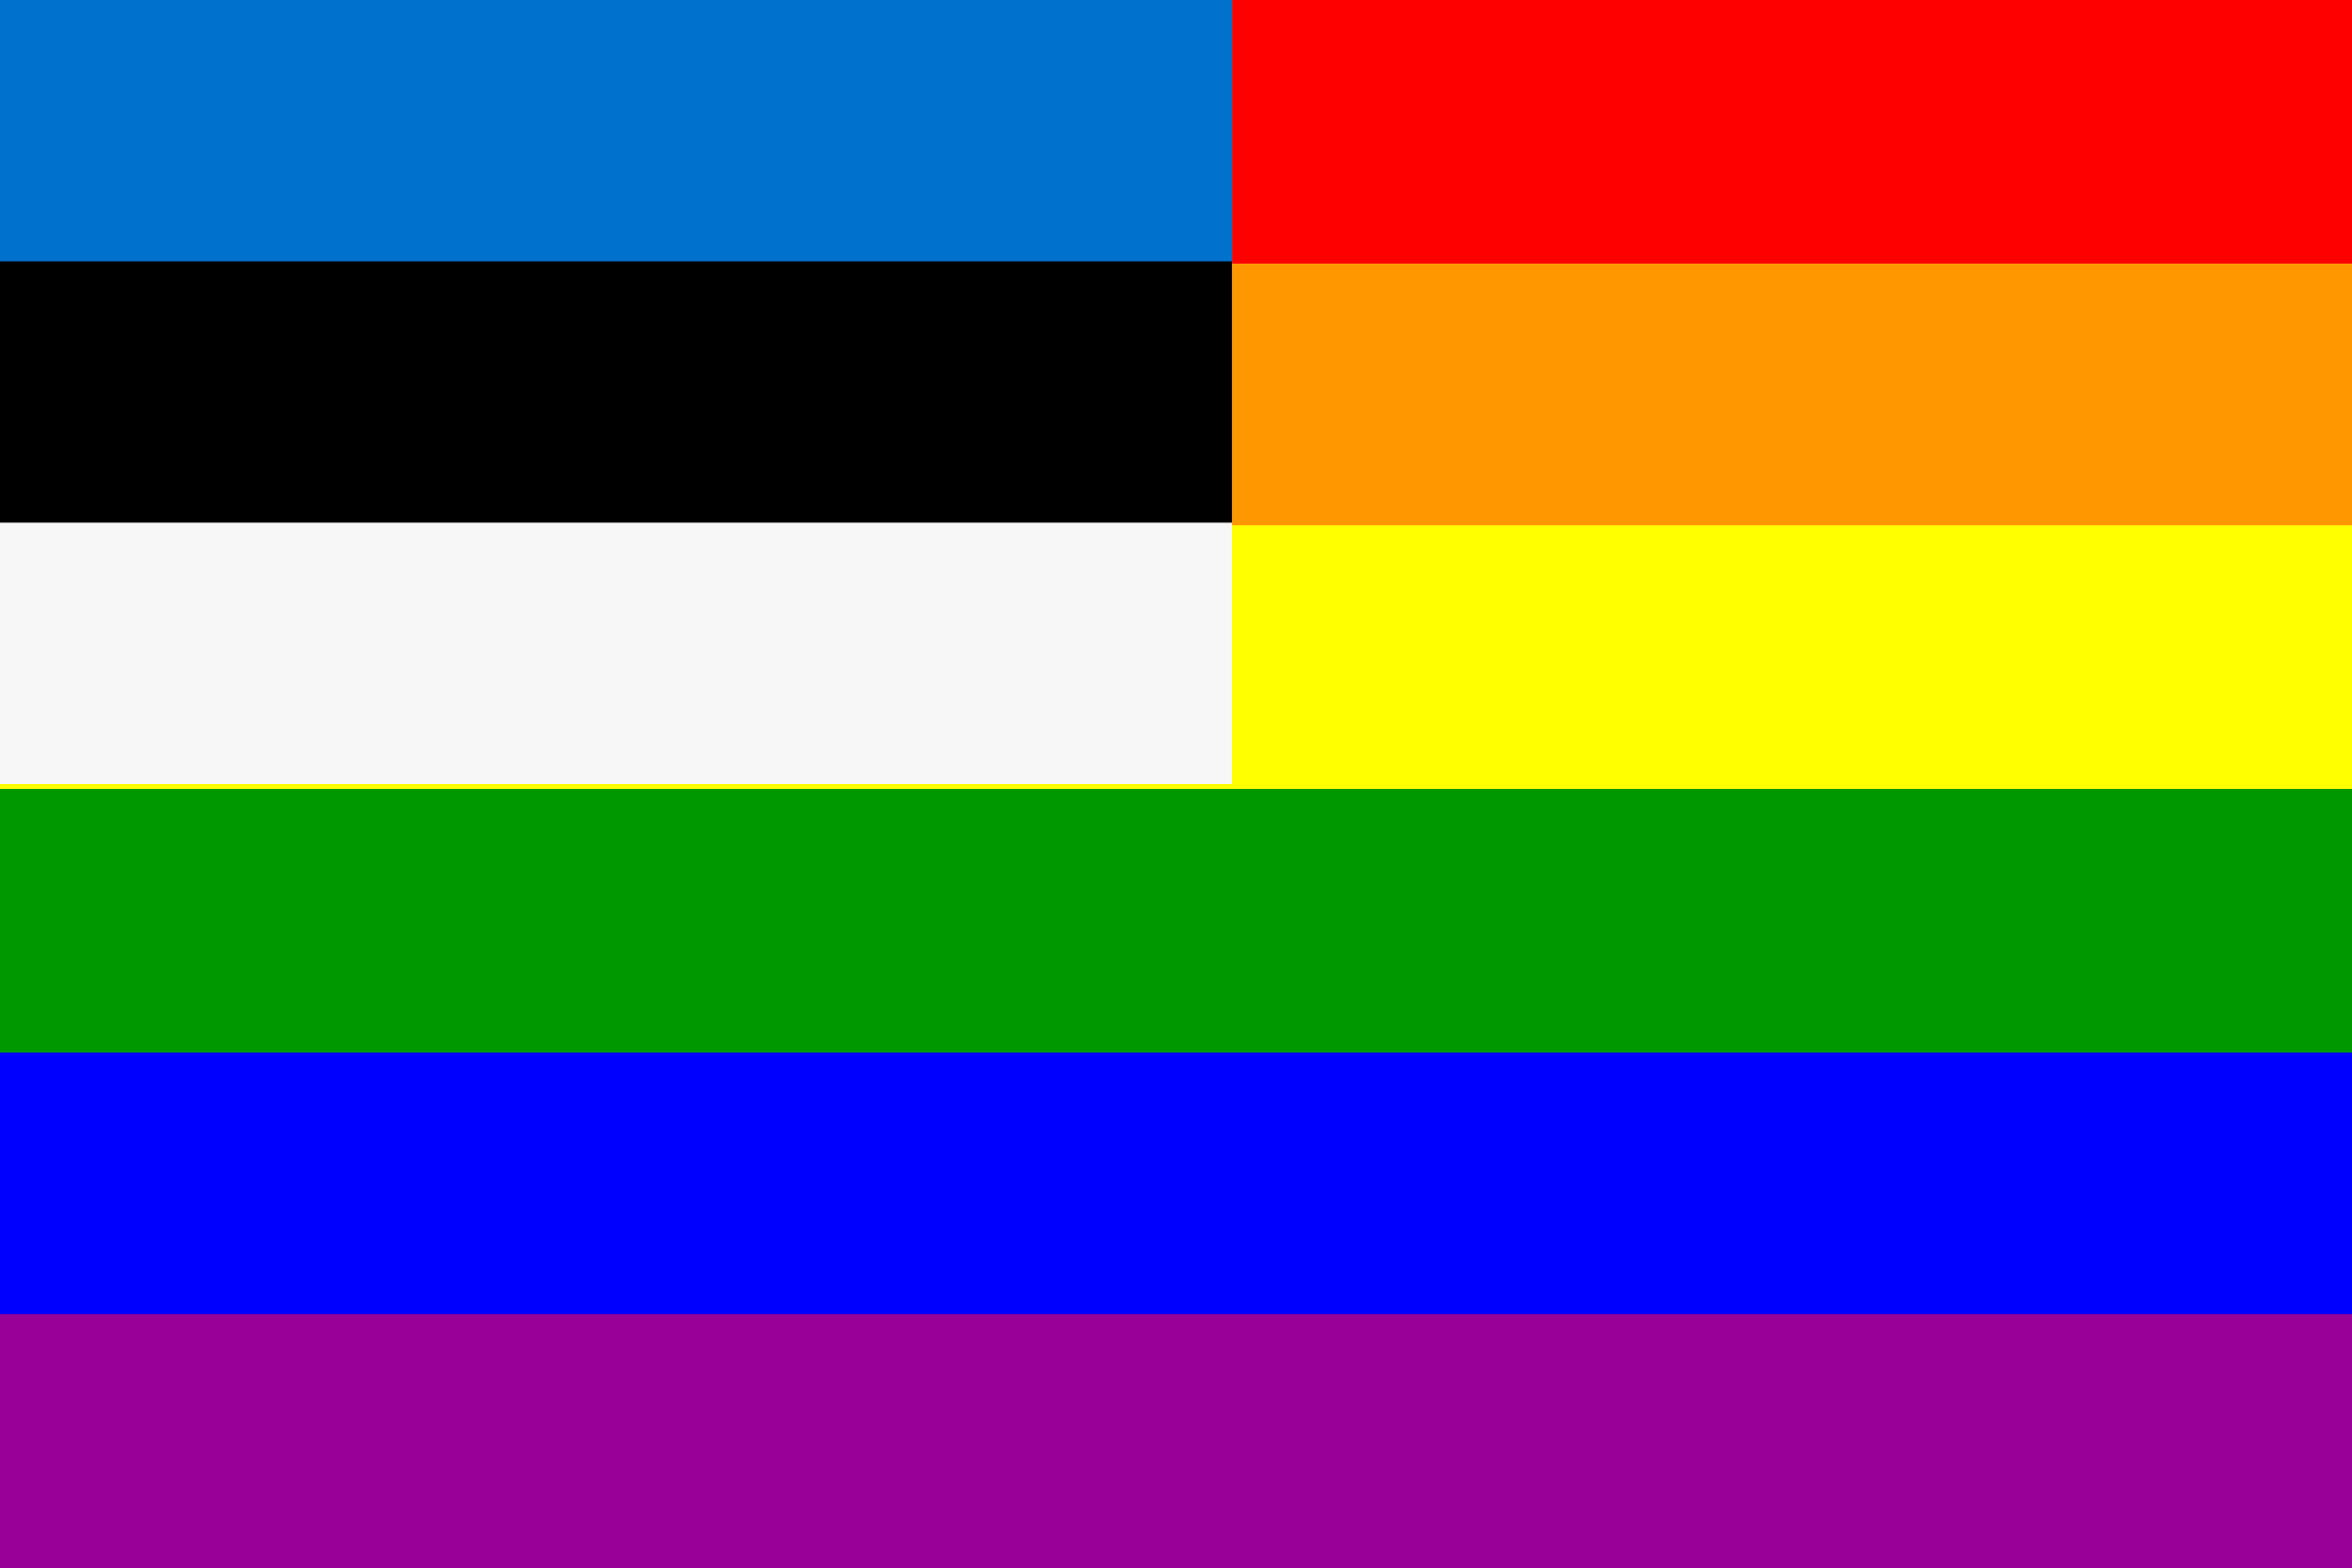 The Estonia Rainbow Flag by AdamStanislav